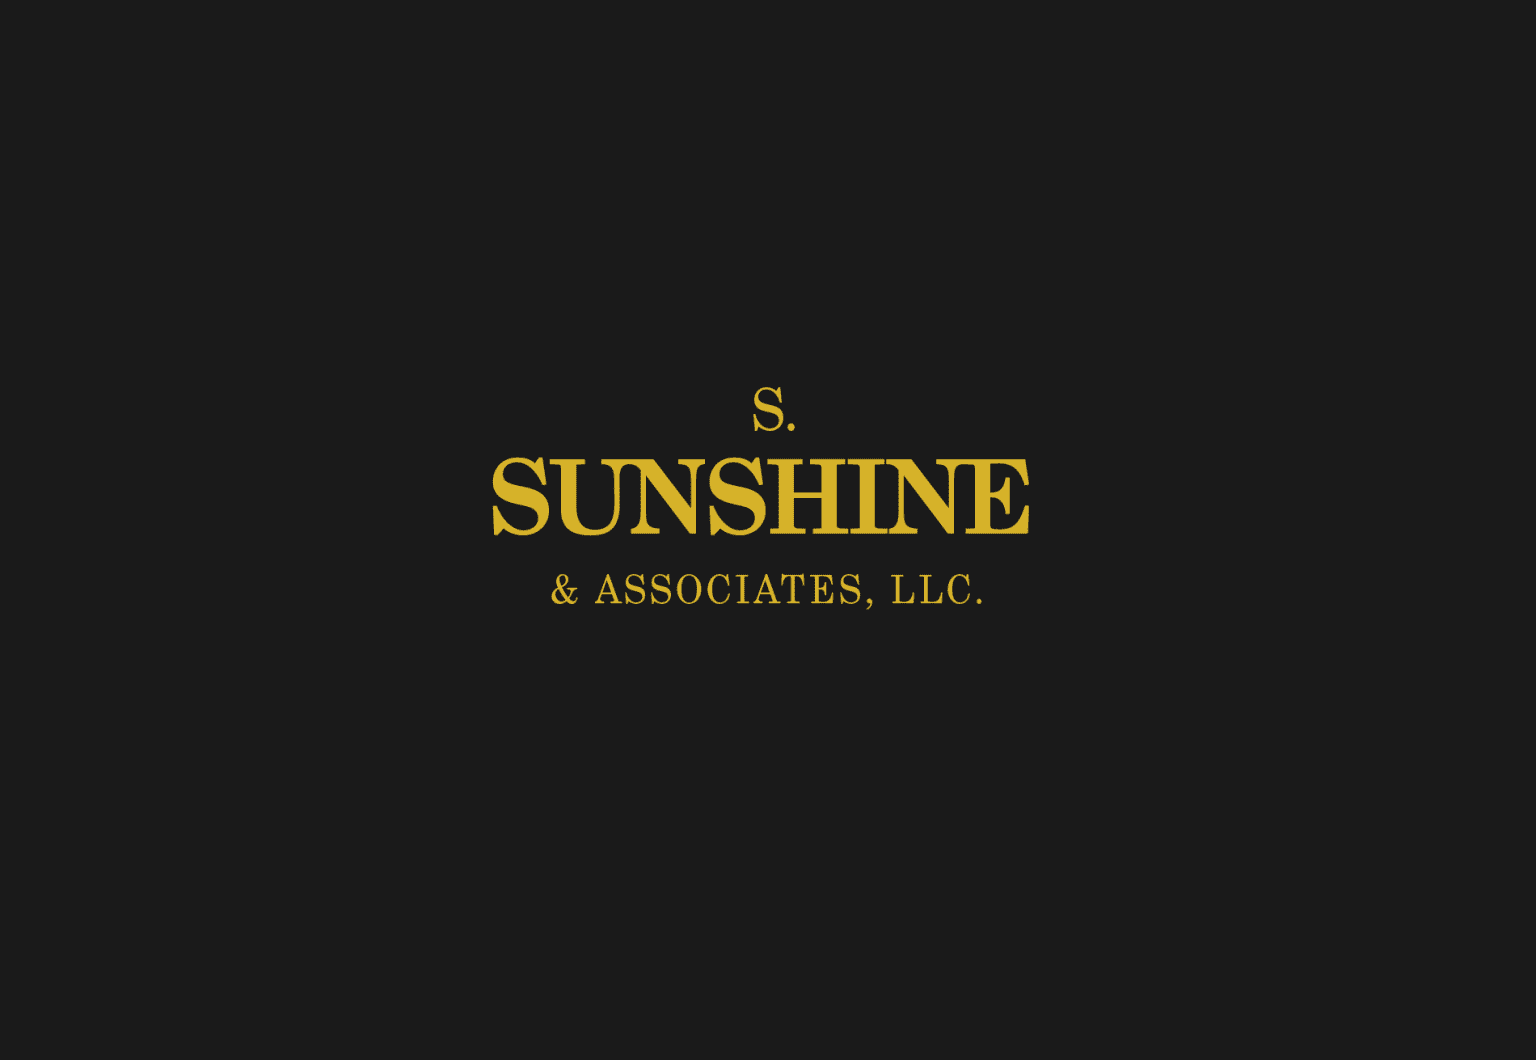 Web Redesign & Dev for S. Sunshine & Associates